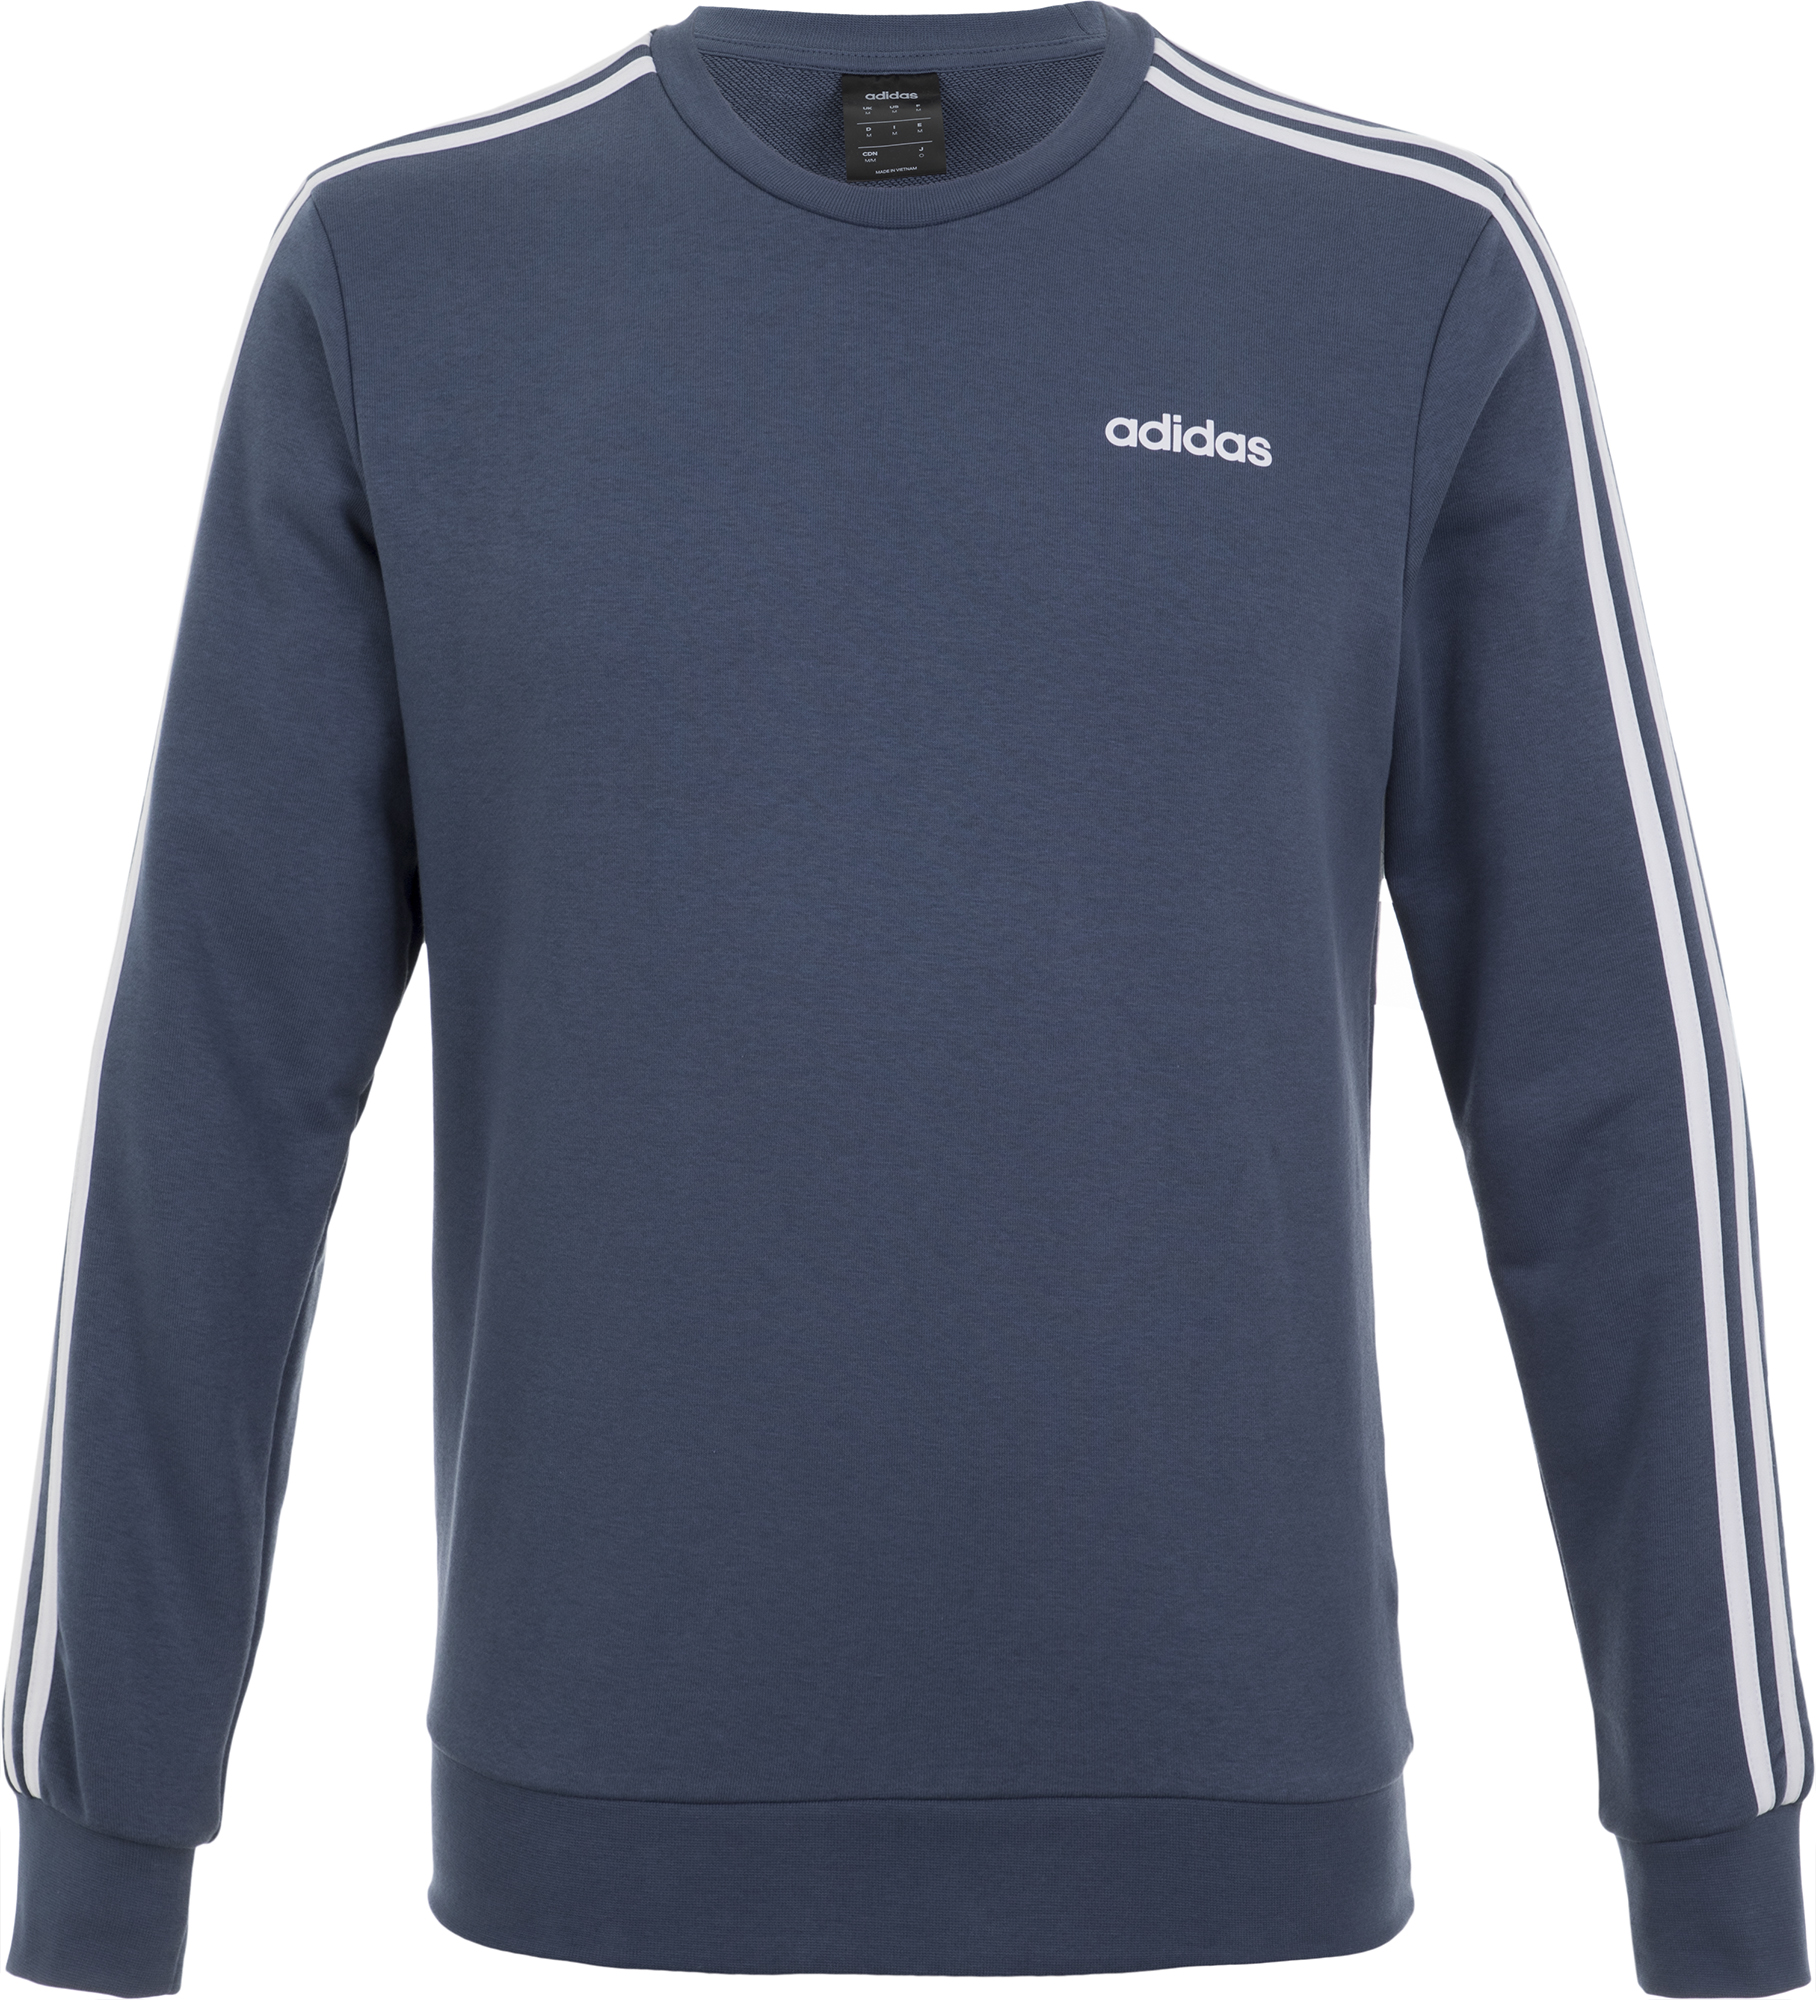 Adidas Свитшот мужской Adidas Essentials 3-Stripes, размер 54 все цены